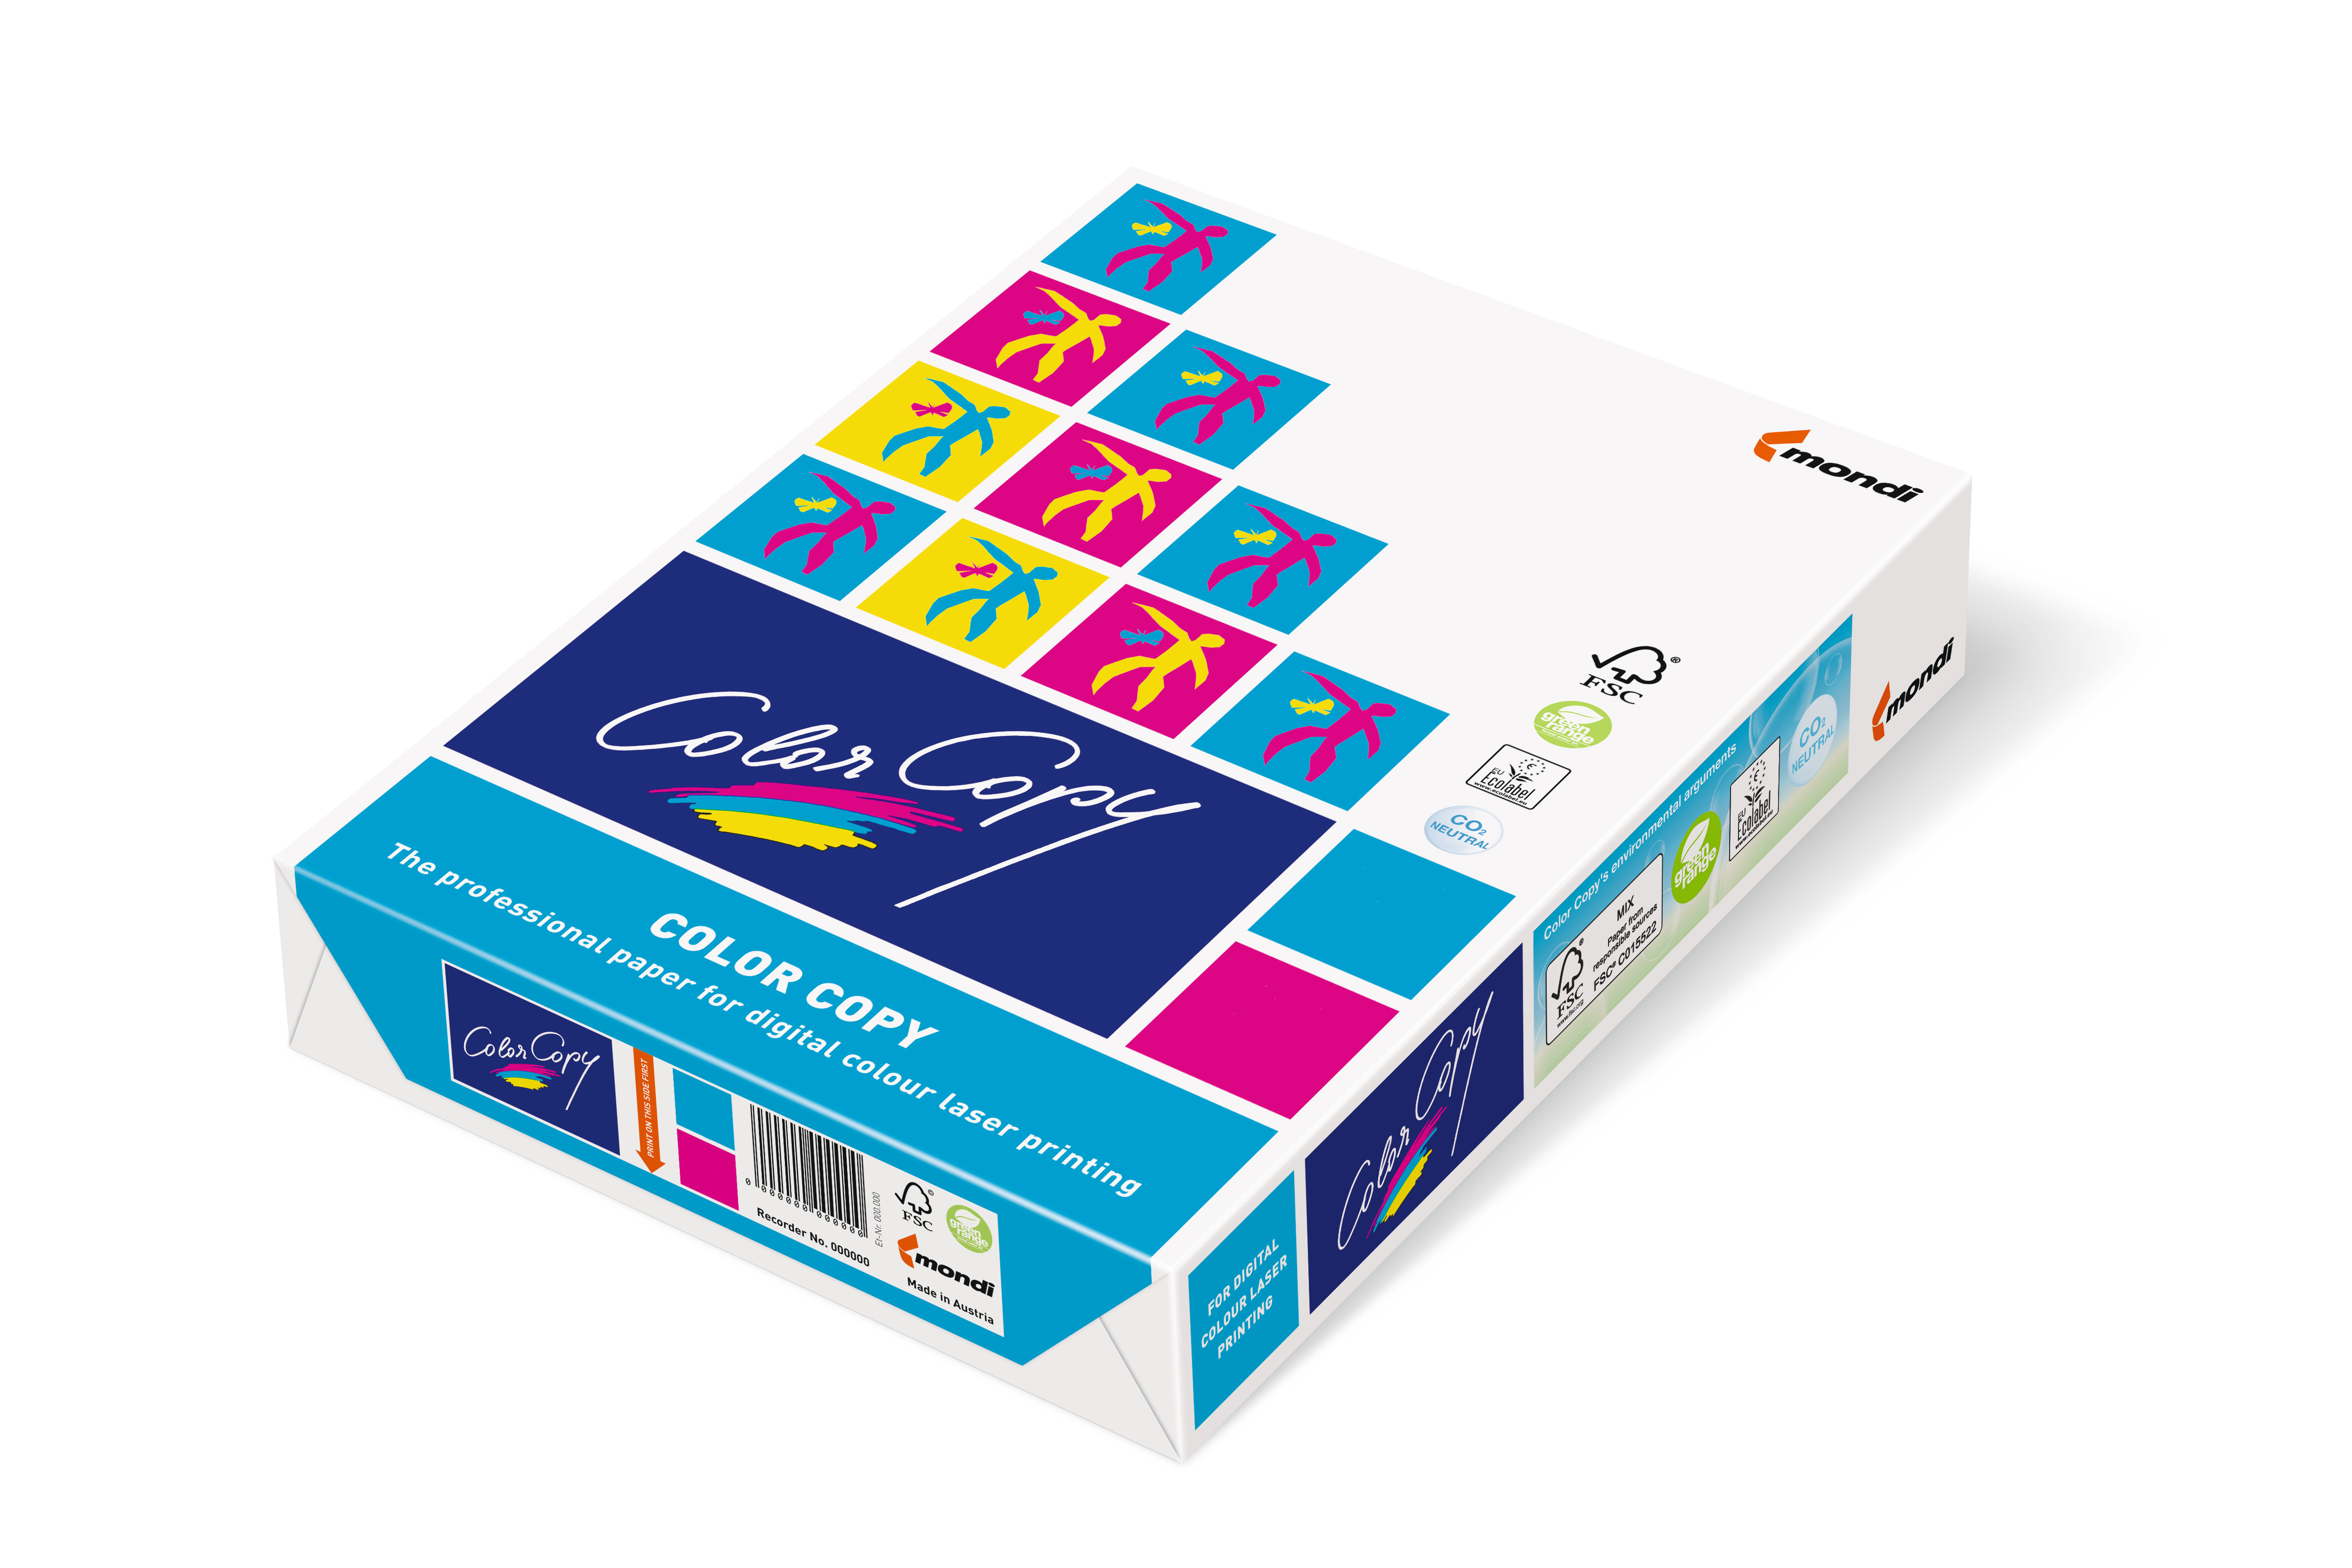 Mondi Color Copy Papier 250g/m² DIN-A4 125 Blatt